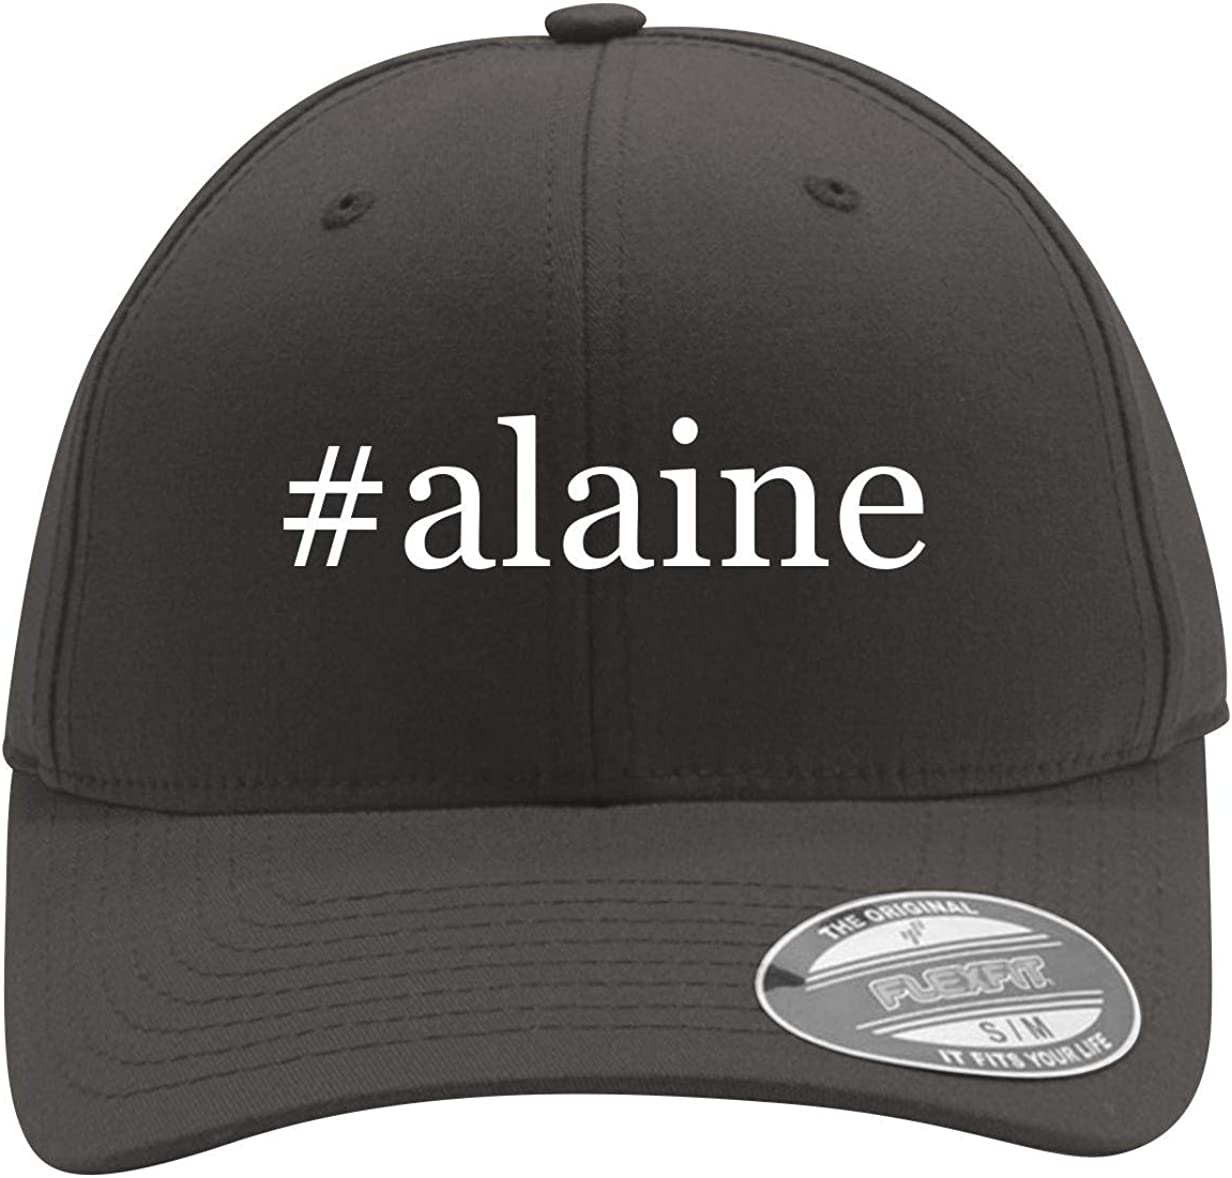 #Alaine - Men's Hashtag Flexfit Baseball Cap Hat